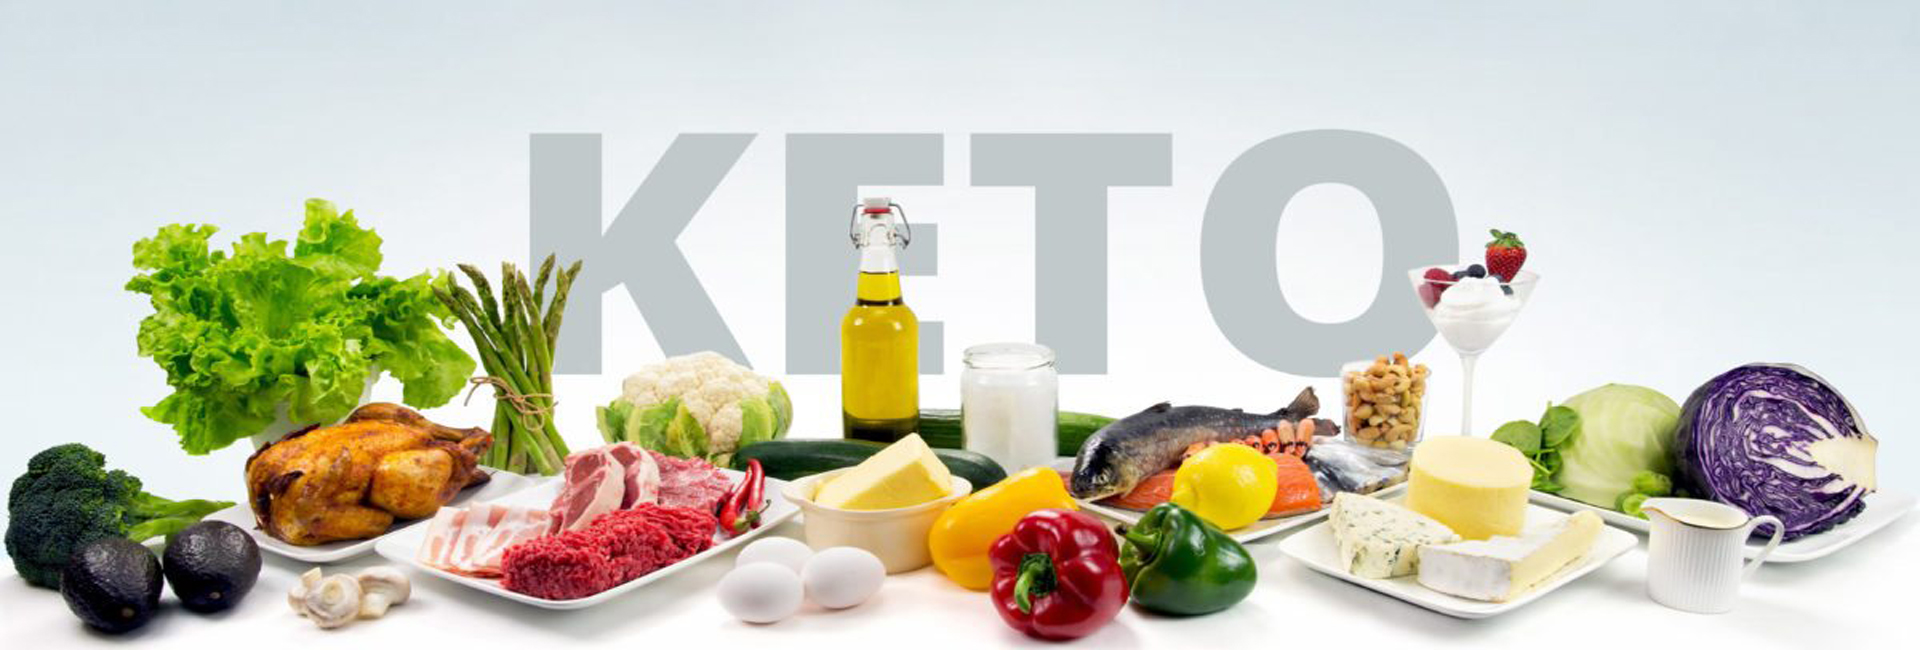 Keto Diet Plan In Ruwais